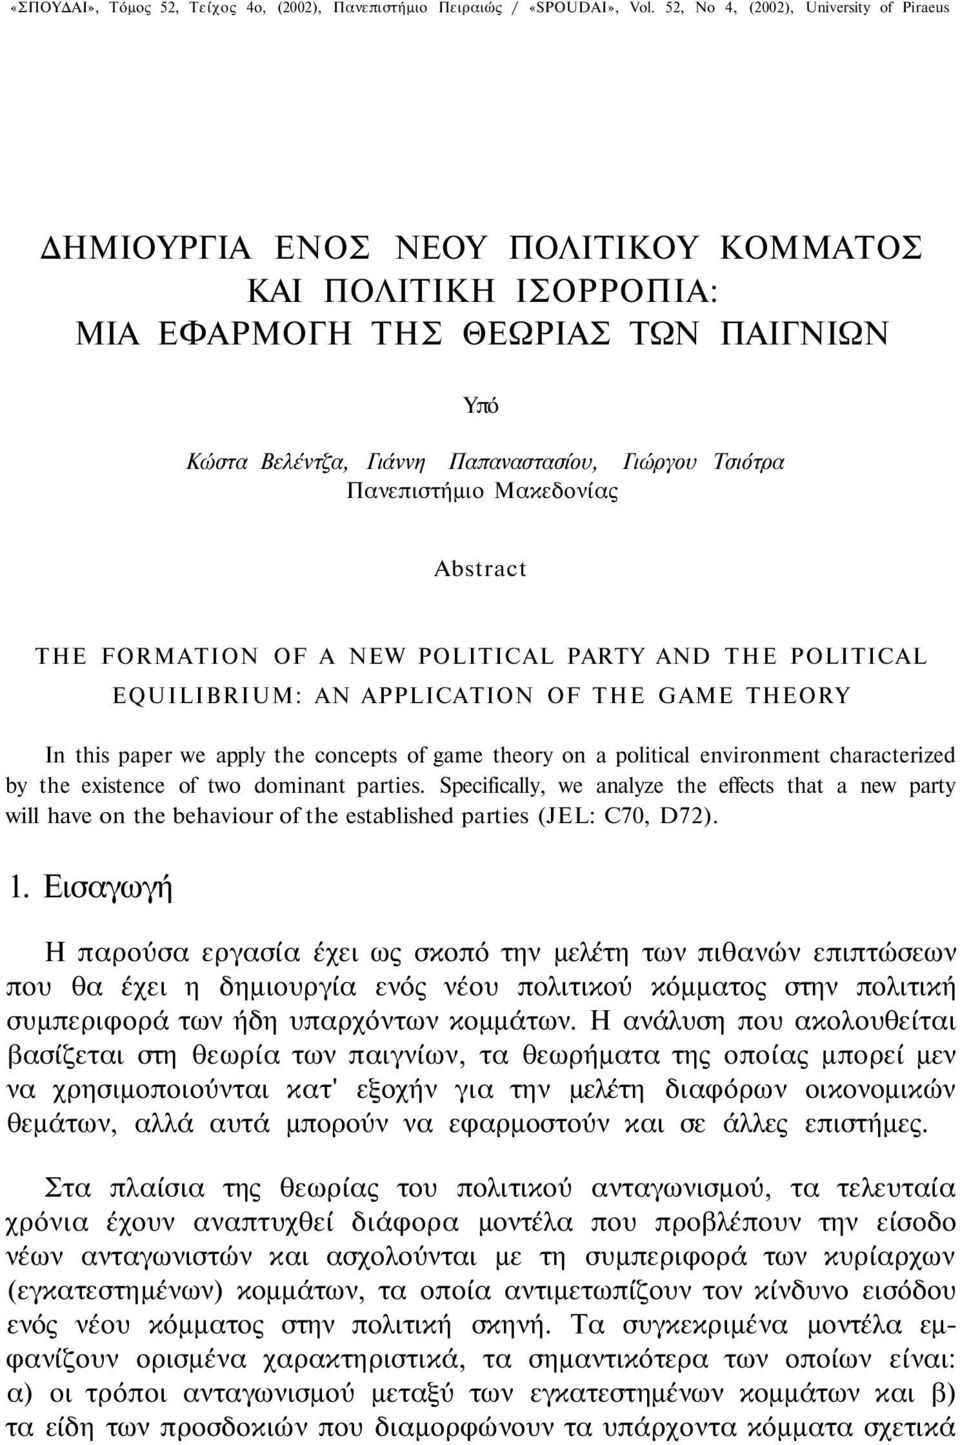 Πανεπιστήμιο Μακεδονίας Abstract THE FORMATION OF A NEW POLITICAL PARTY AND THE POLITICAL EQUILIBRIUM: AN APPLICATION OF THE GAME THEORY In this paper we apply the concepts of game theory on a